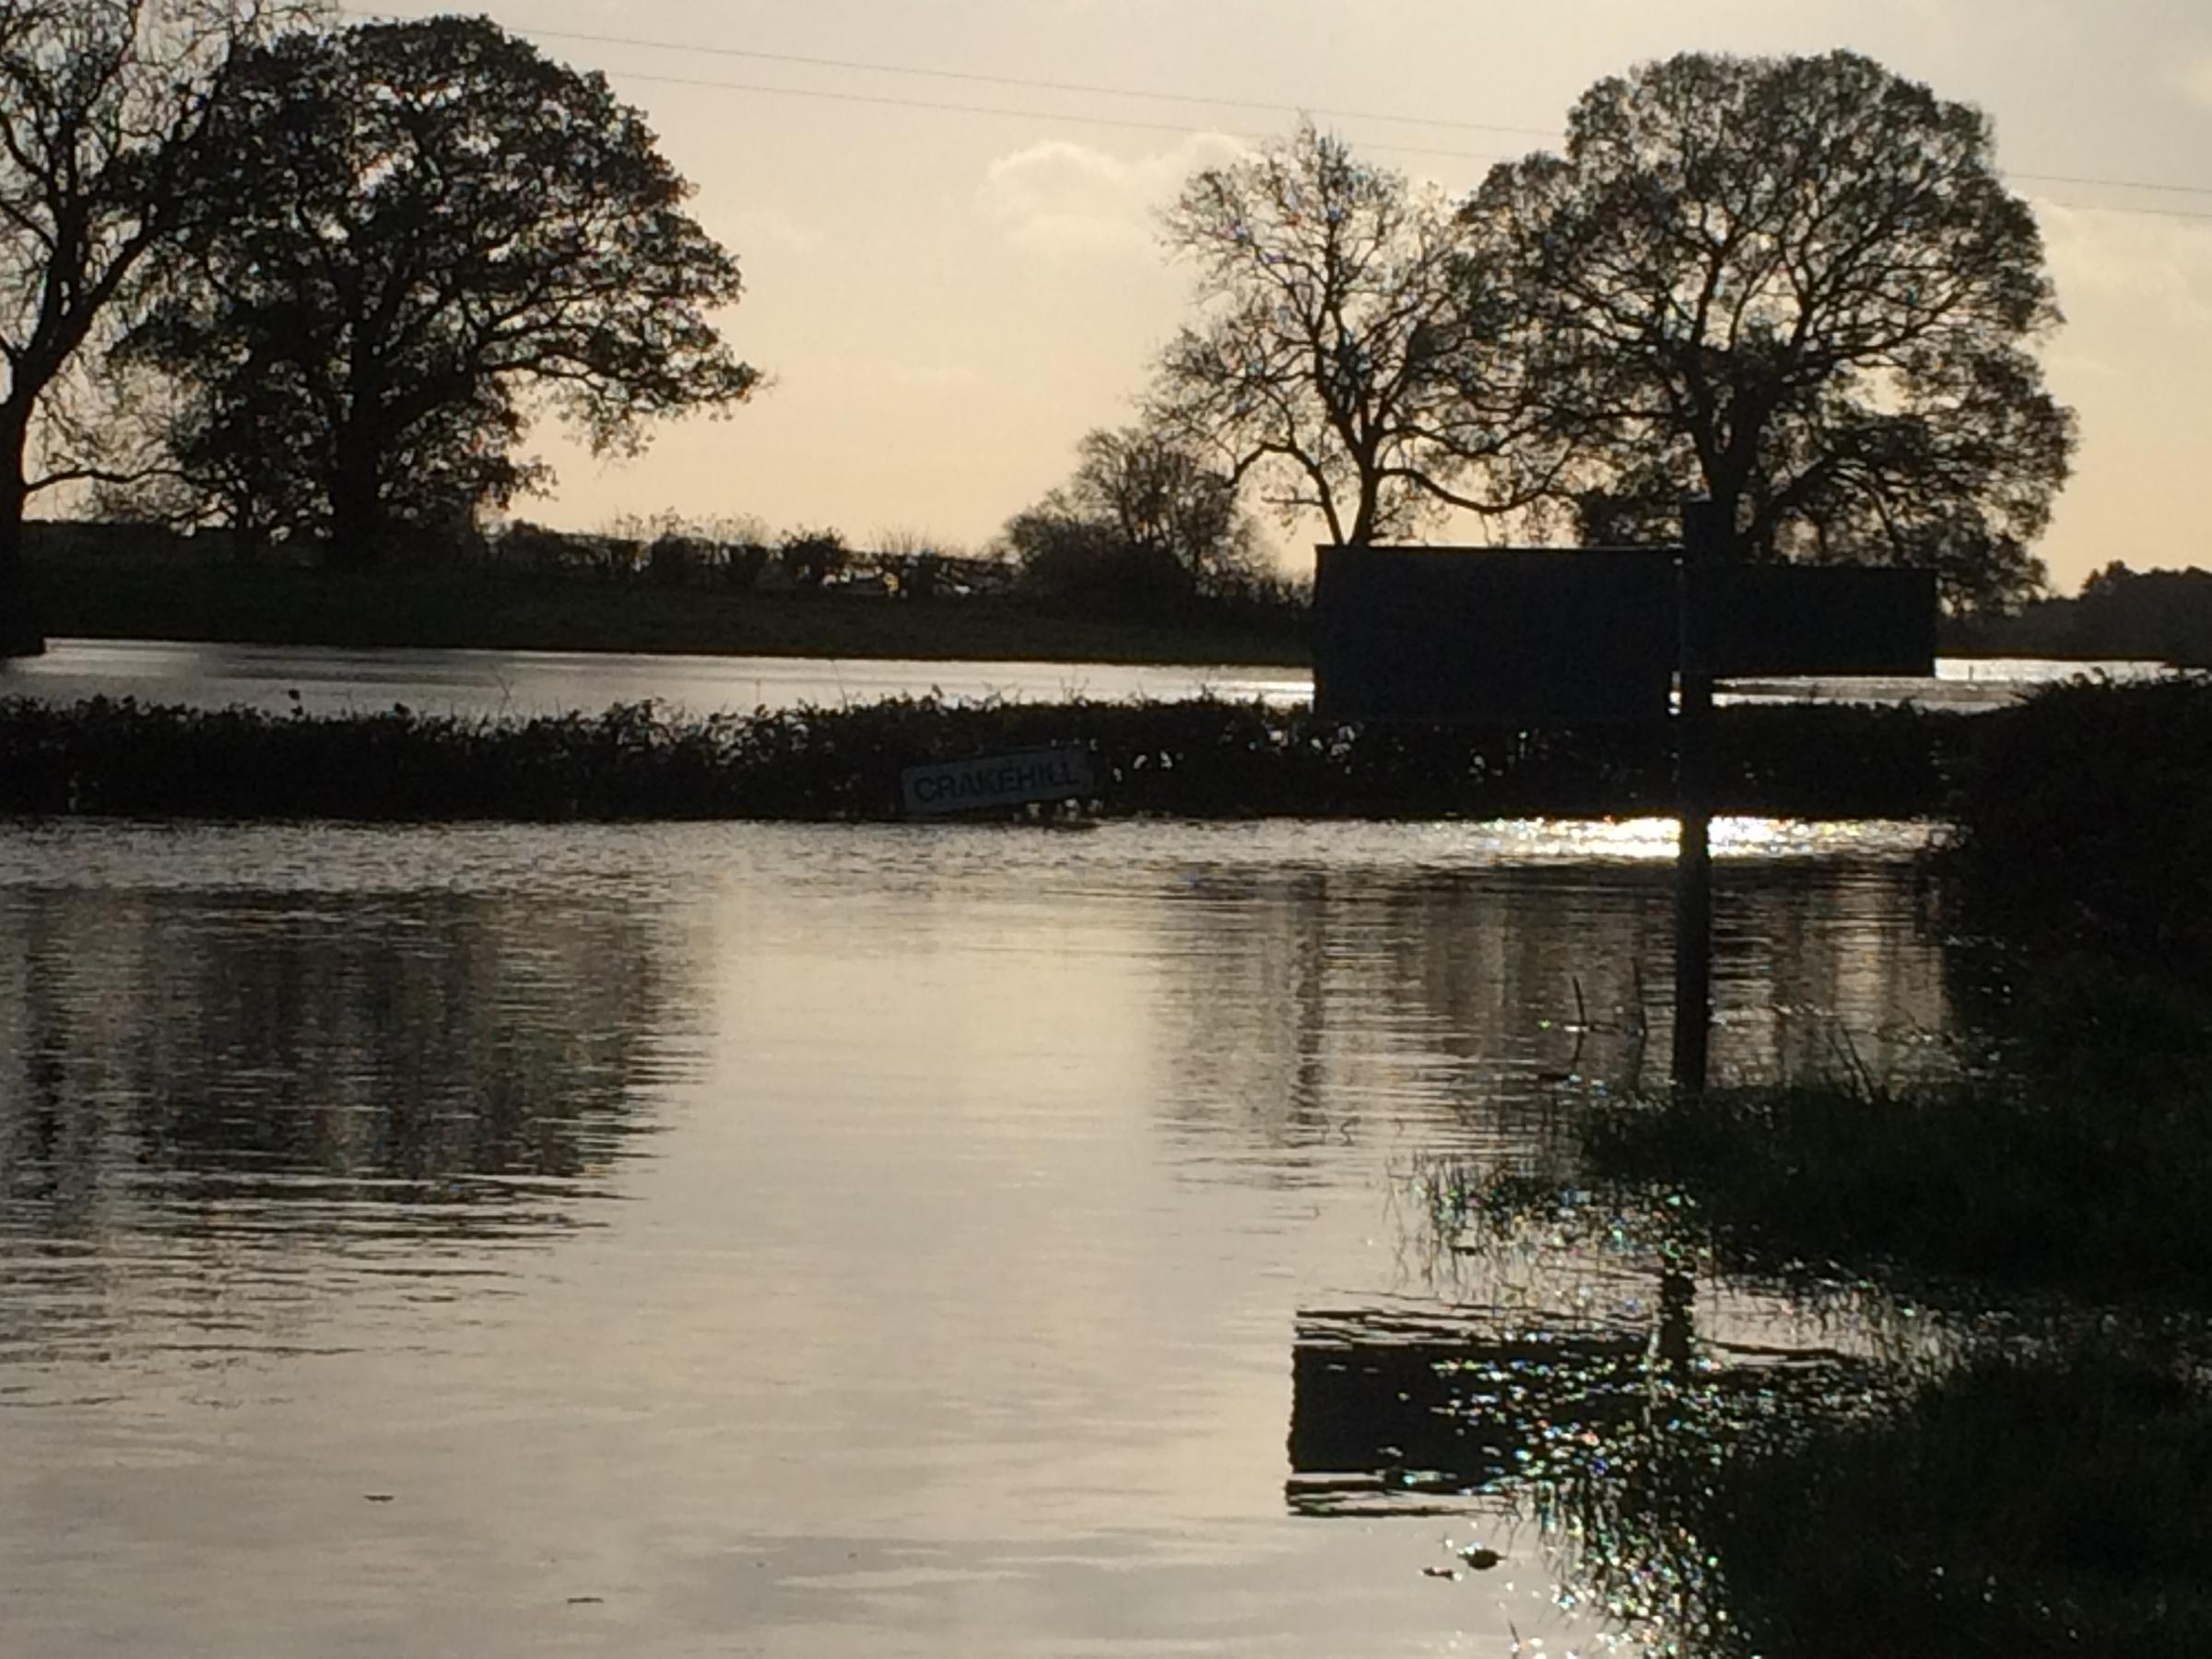 Flood-hit hamlet set to get defences approved